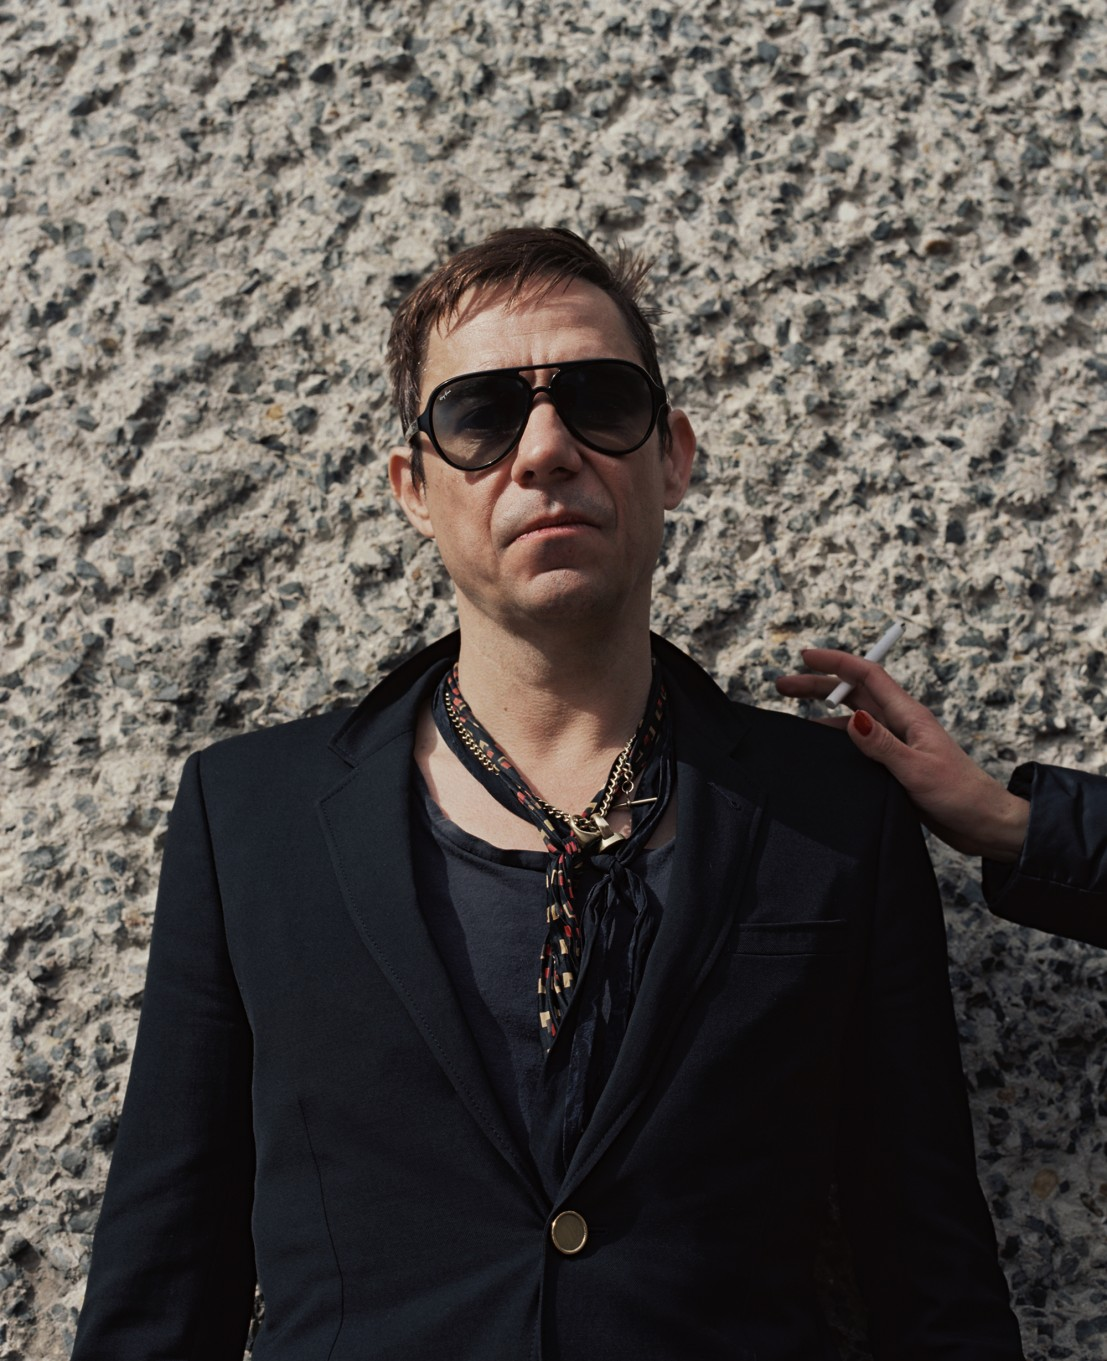 Jamie Hince from The Kills by Hollie Fernando